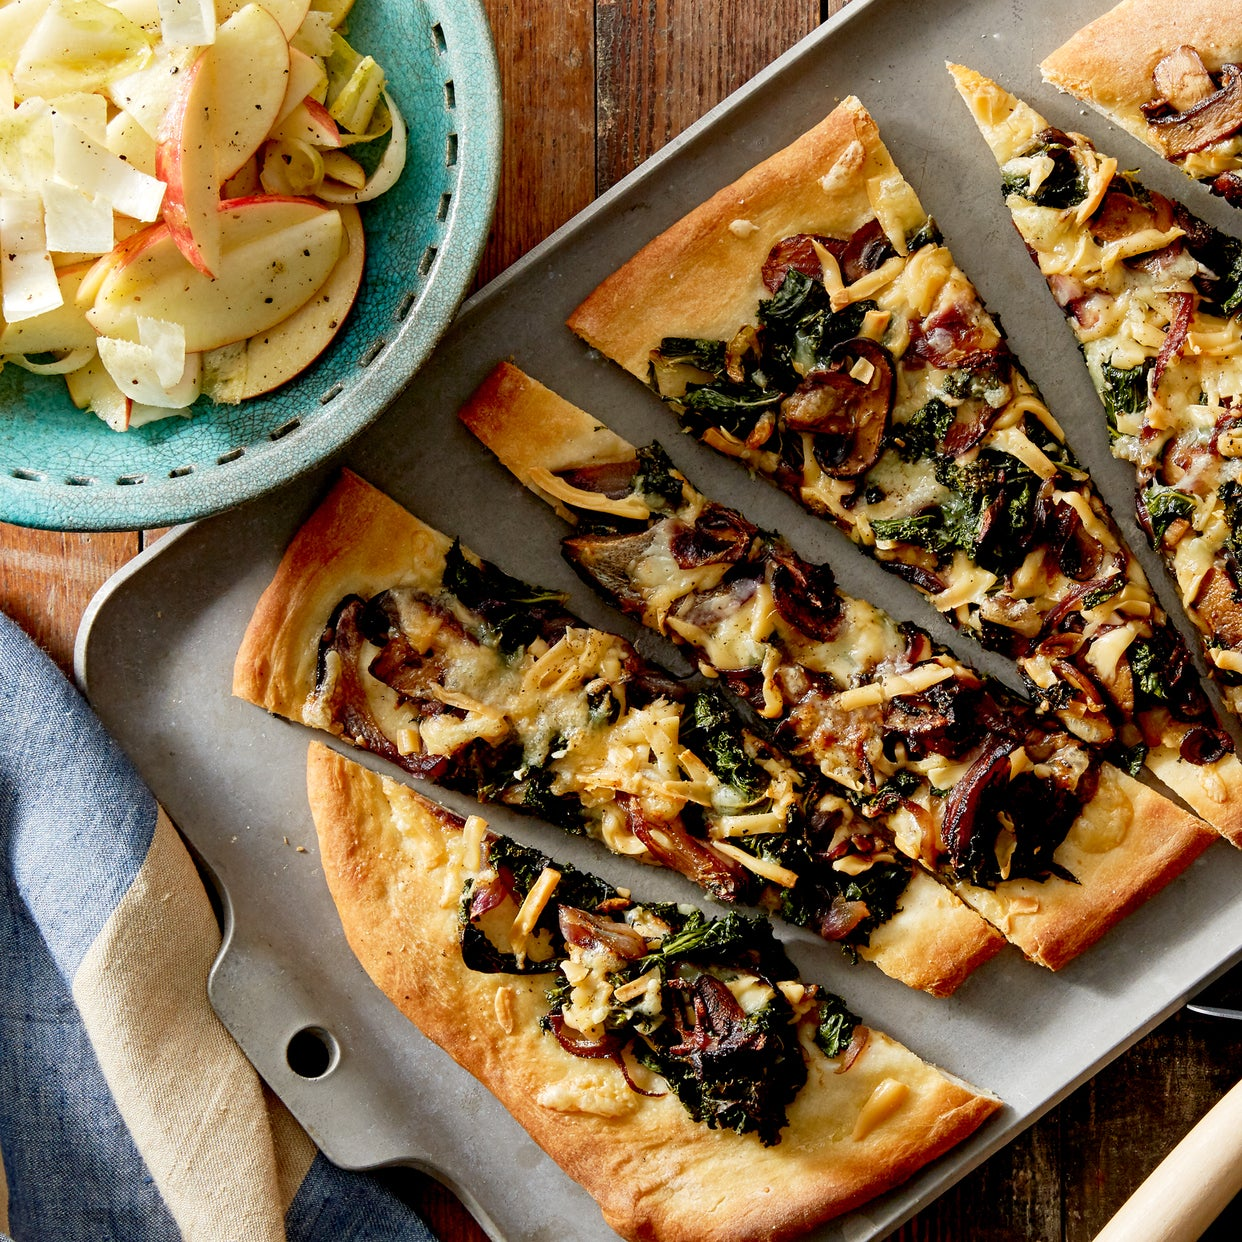 Smoked Gouda & Mushroom Flatbread with Endive & Apple Salad